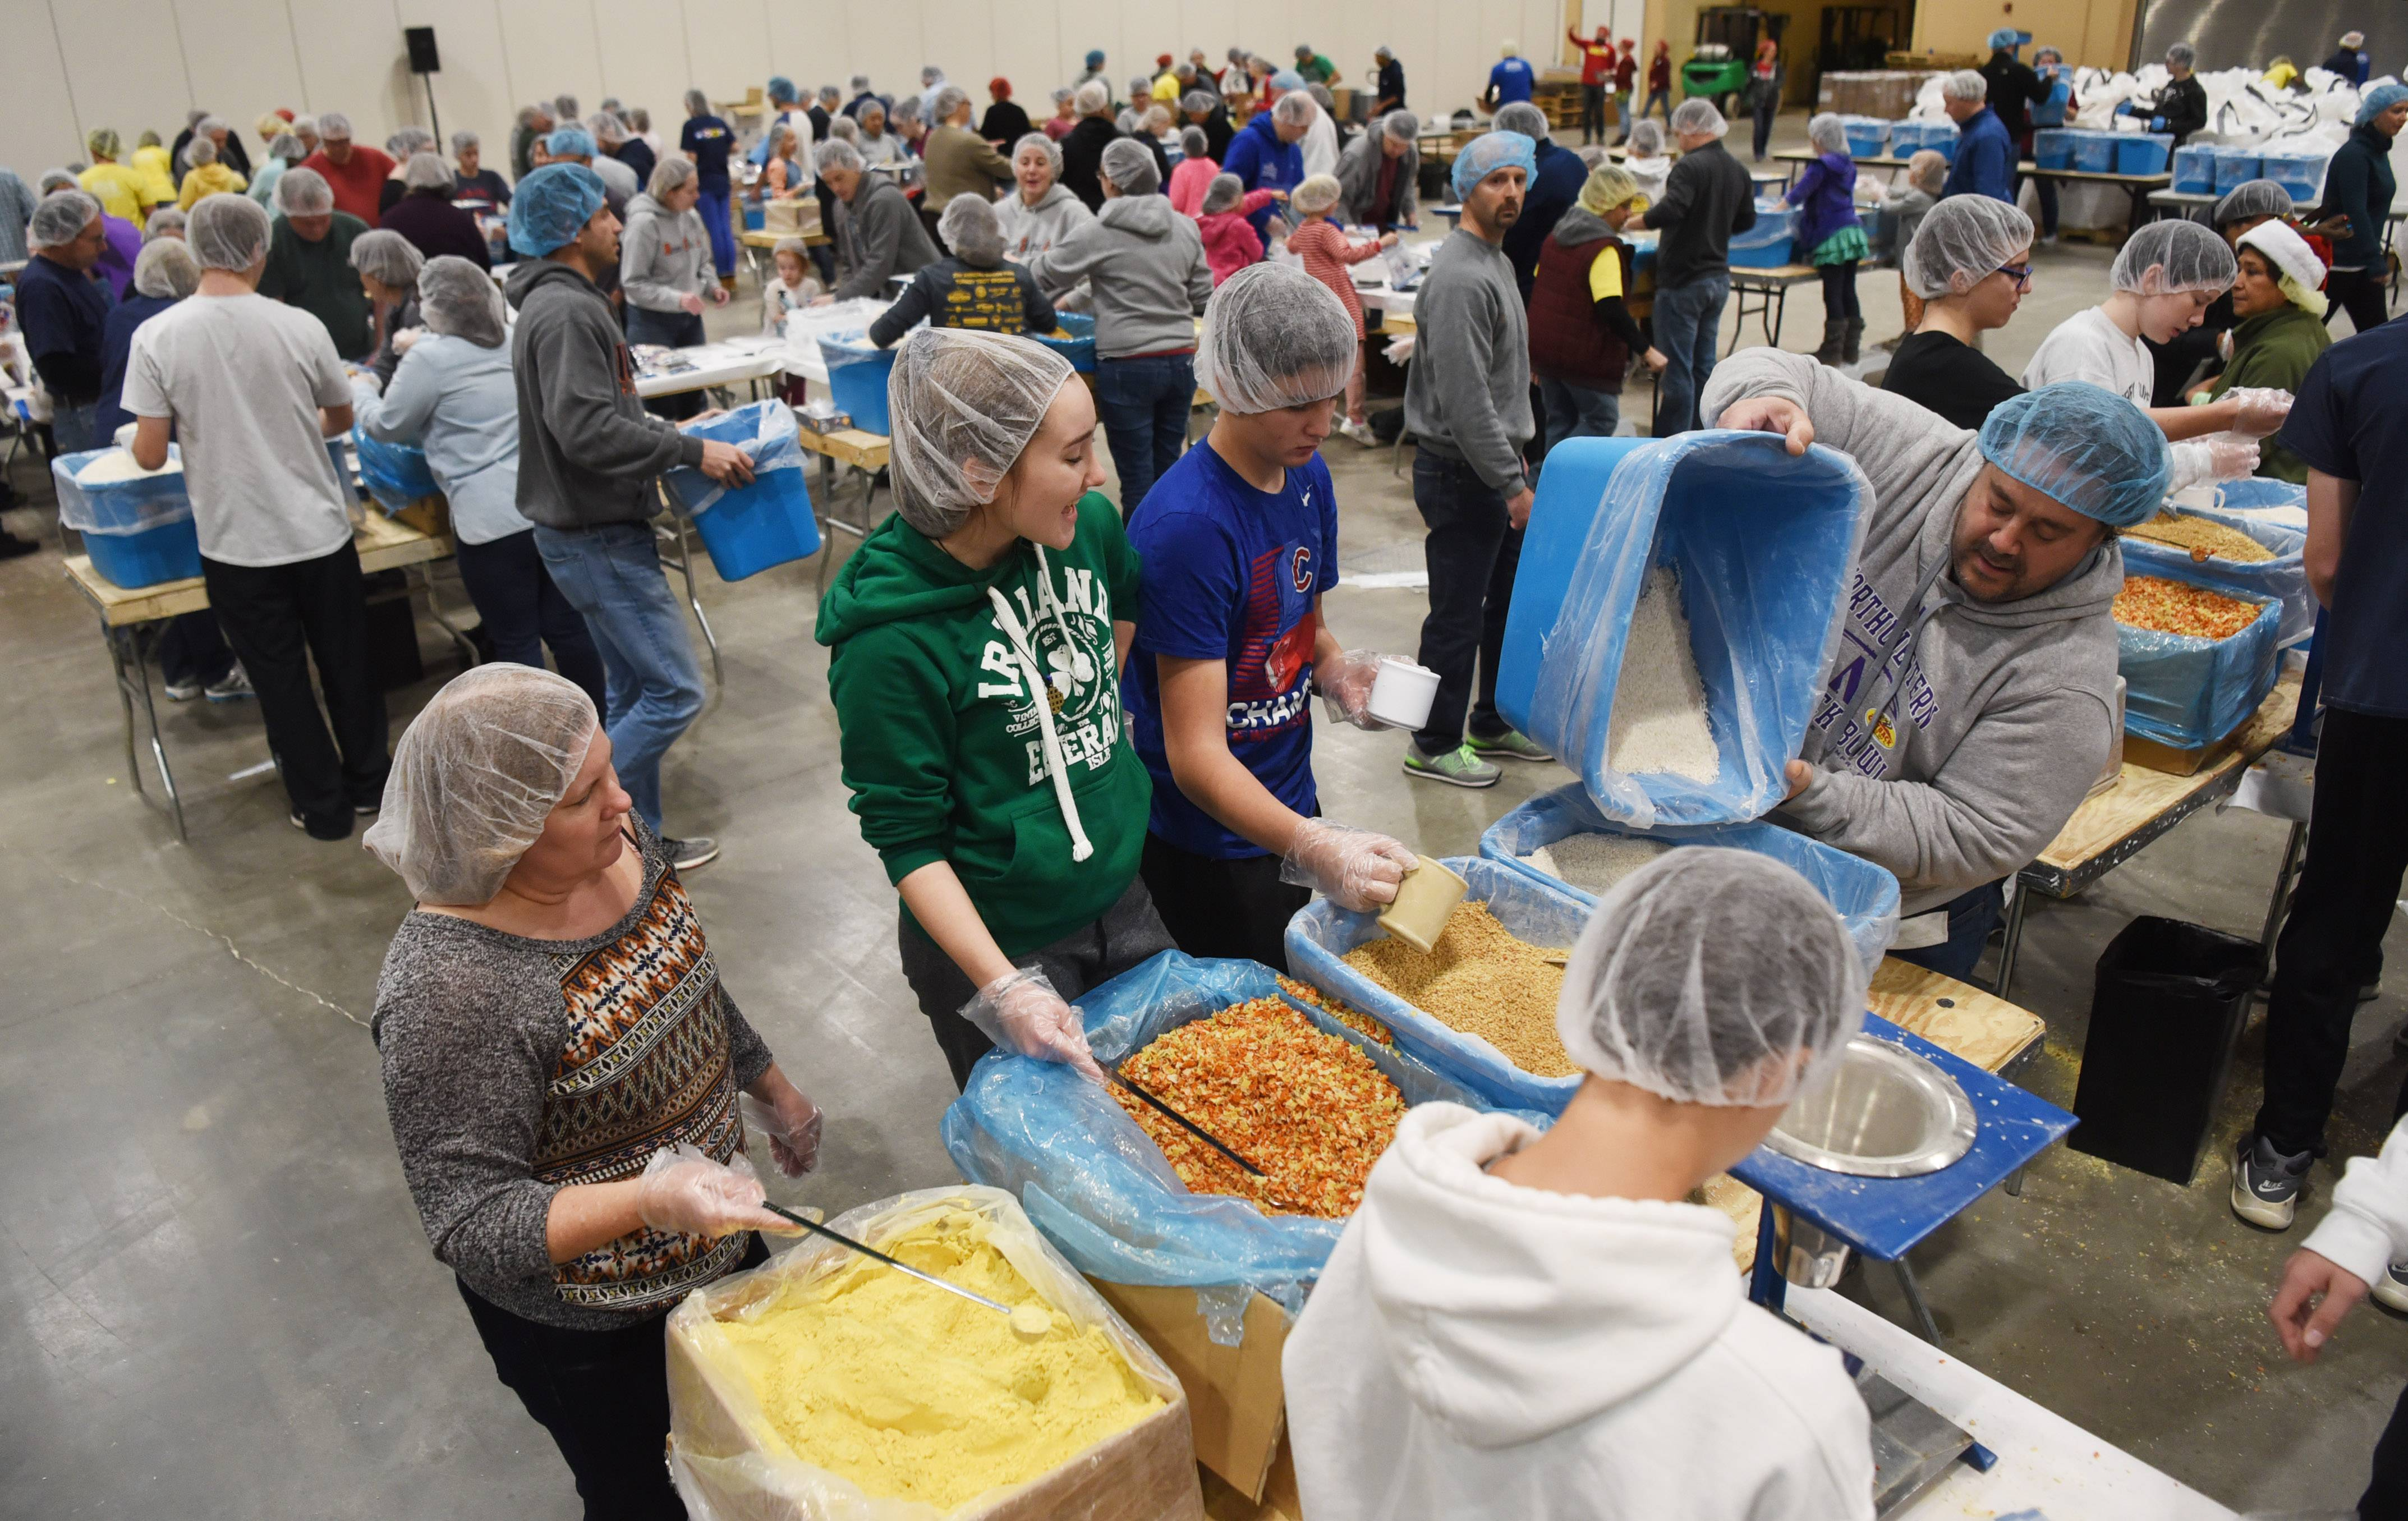 A group from St. Viator High School in Arlington Heights took park in Feed My Starving Children's Hope Filled Holiday MobilePack event Sunday at the Renaissance Schaumburg Convention Center.